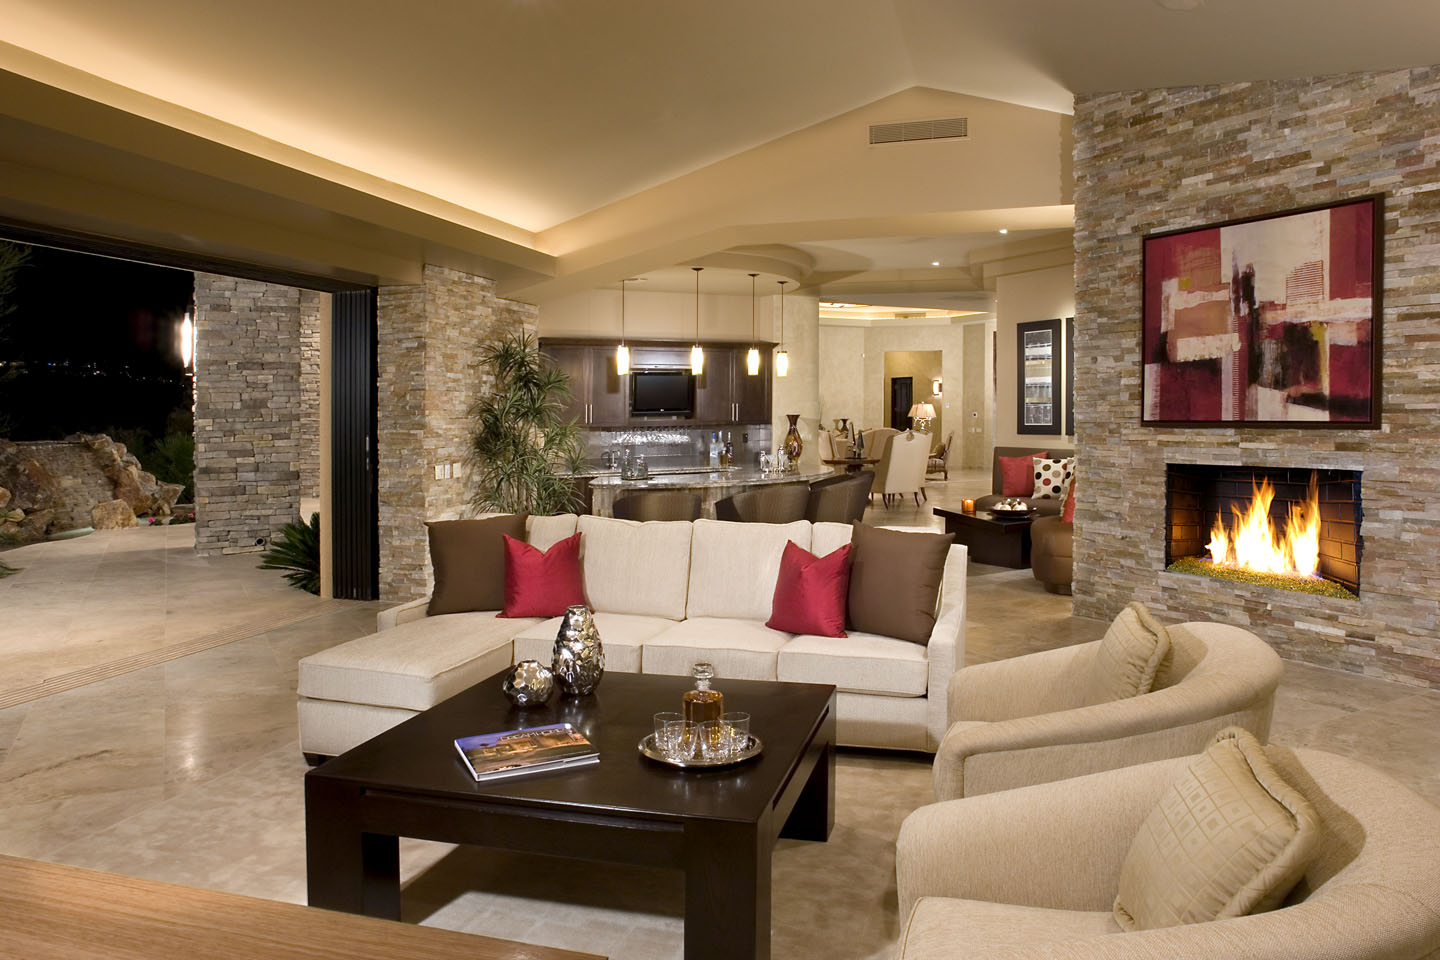 Rock your home with stone interior accents Interior houses